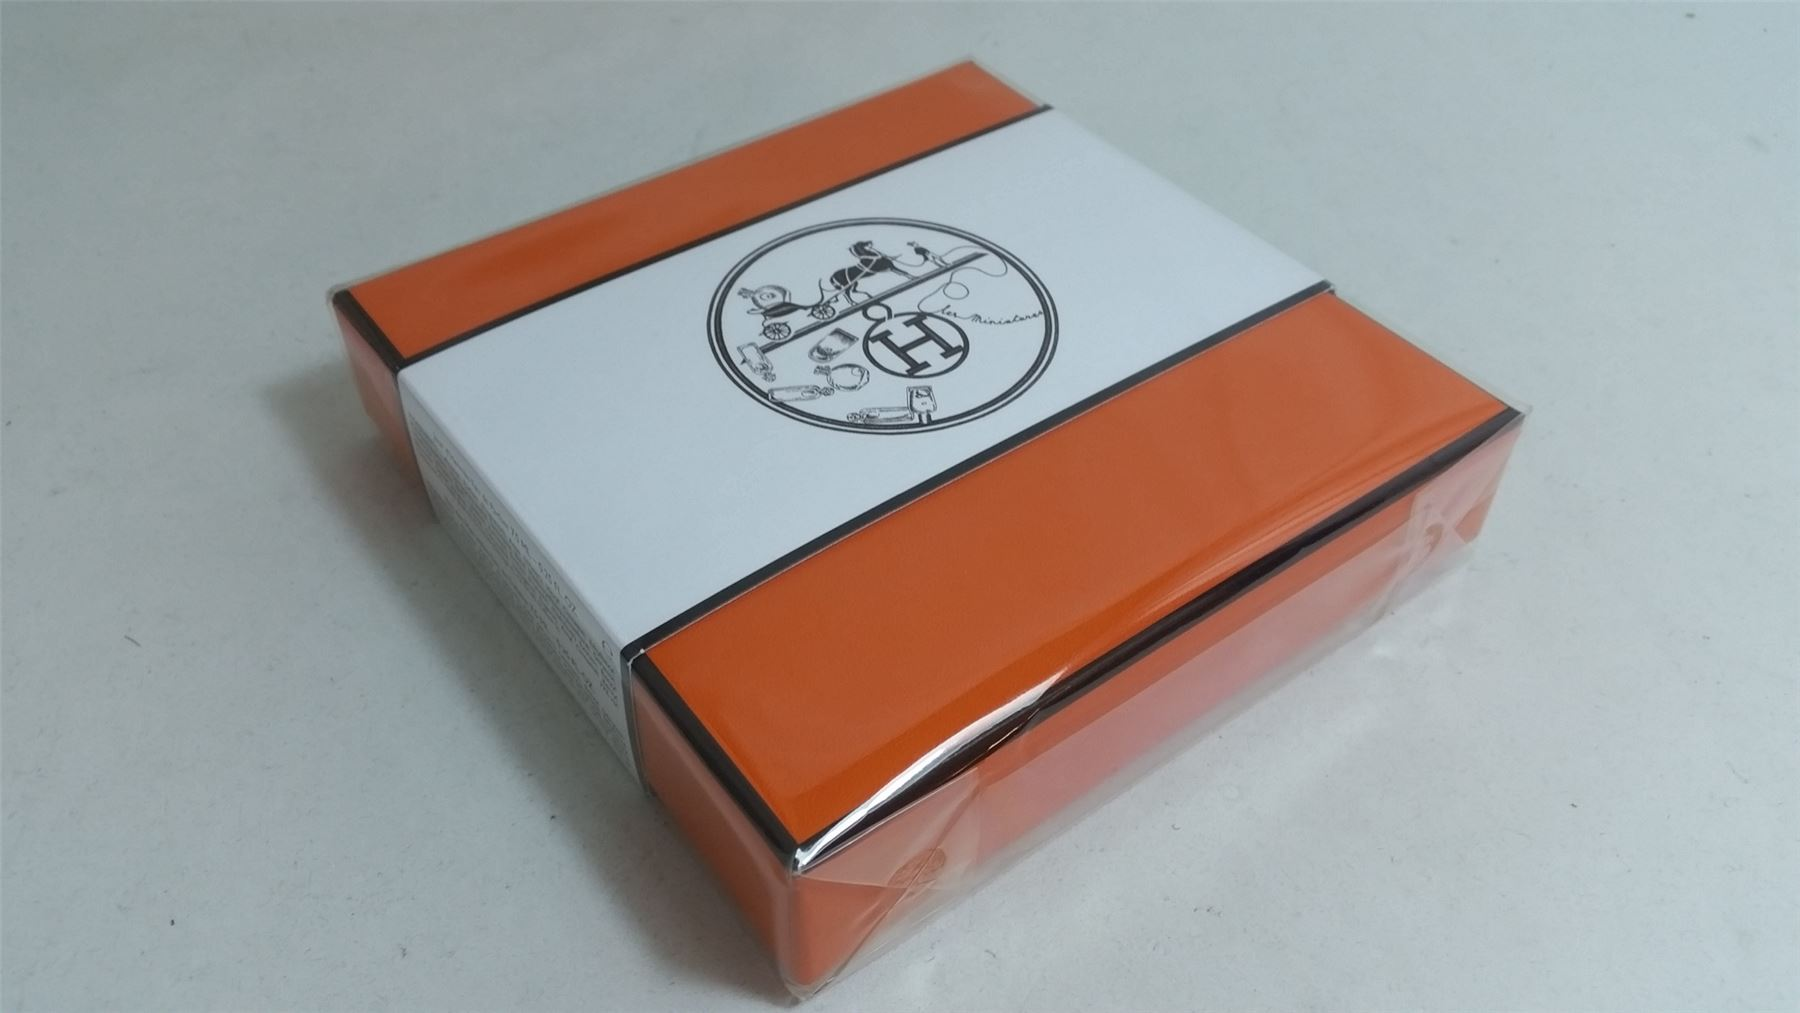 Hermes Baby Gifts Uk : Genuine hermes gift set ml parfum perfume